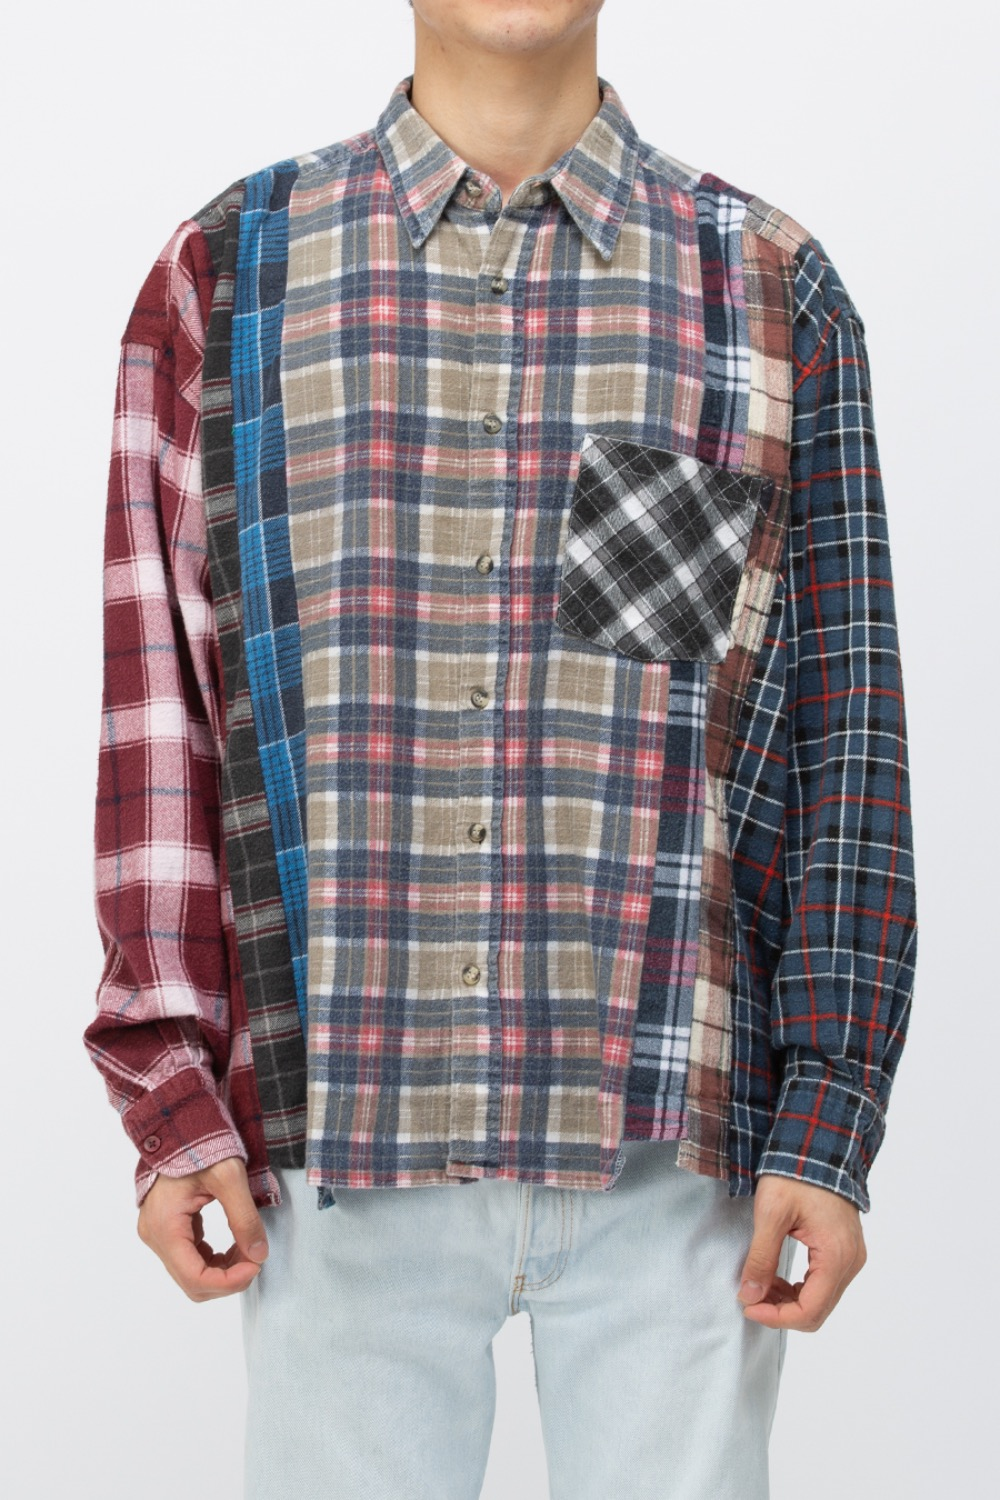 (WIDE-6)REBUILD BY NEEDLES FLANNEL SHIRT - 7CUTS WIDE SHIRT